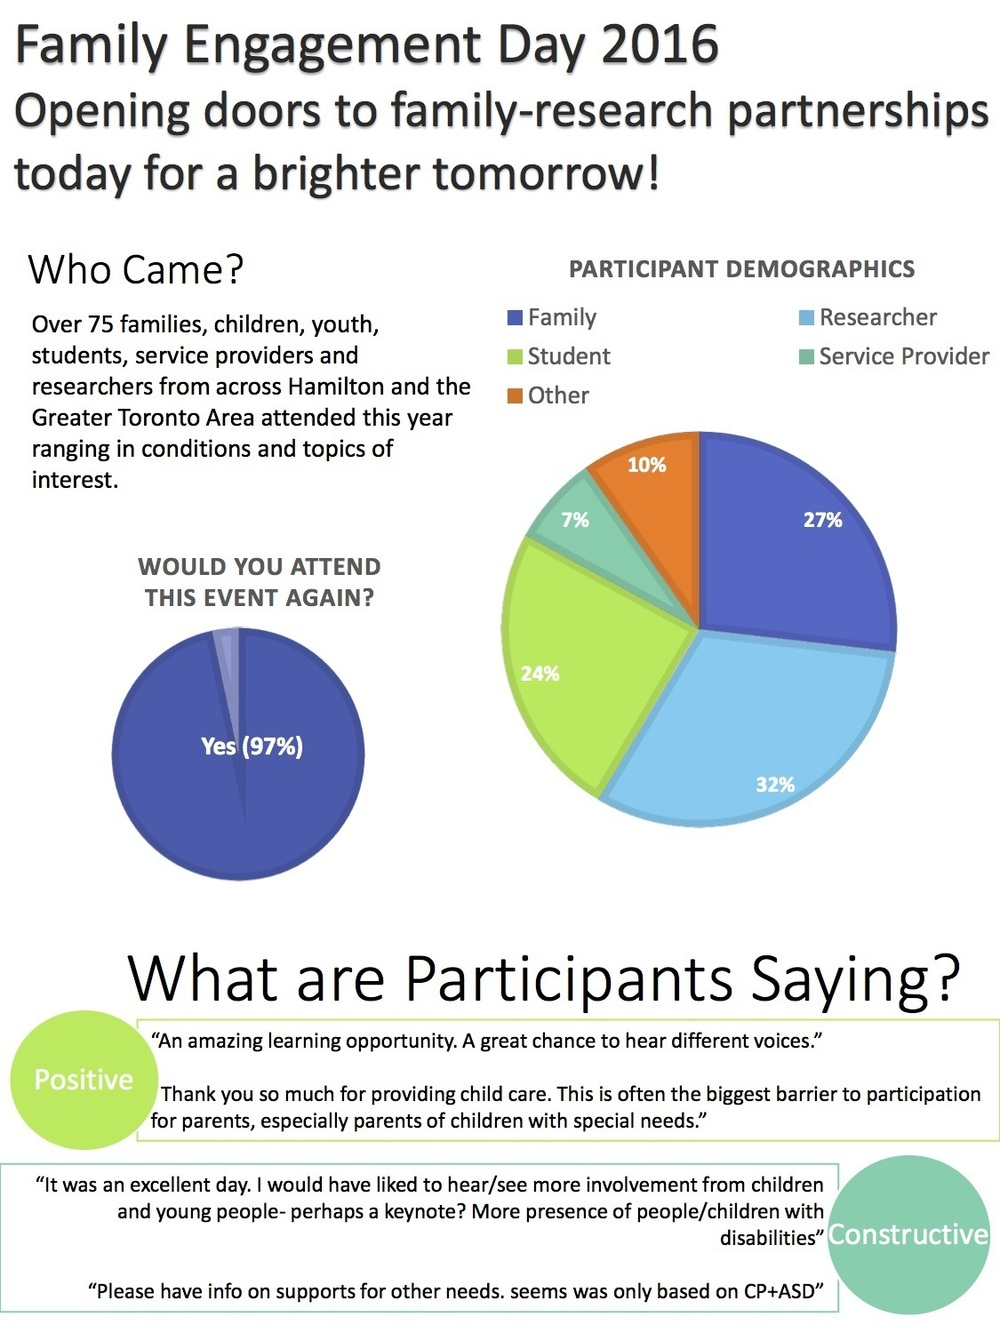 Family engagement day feedback statistics april 8